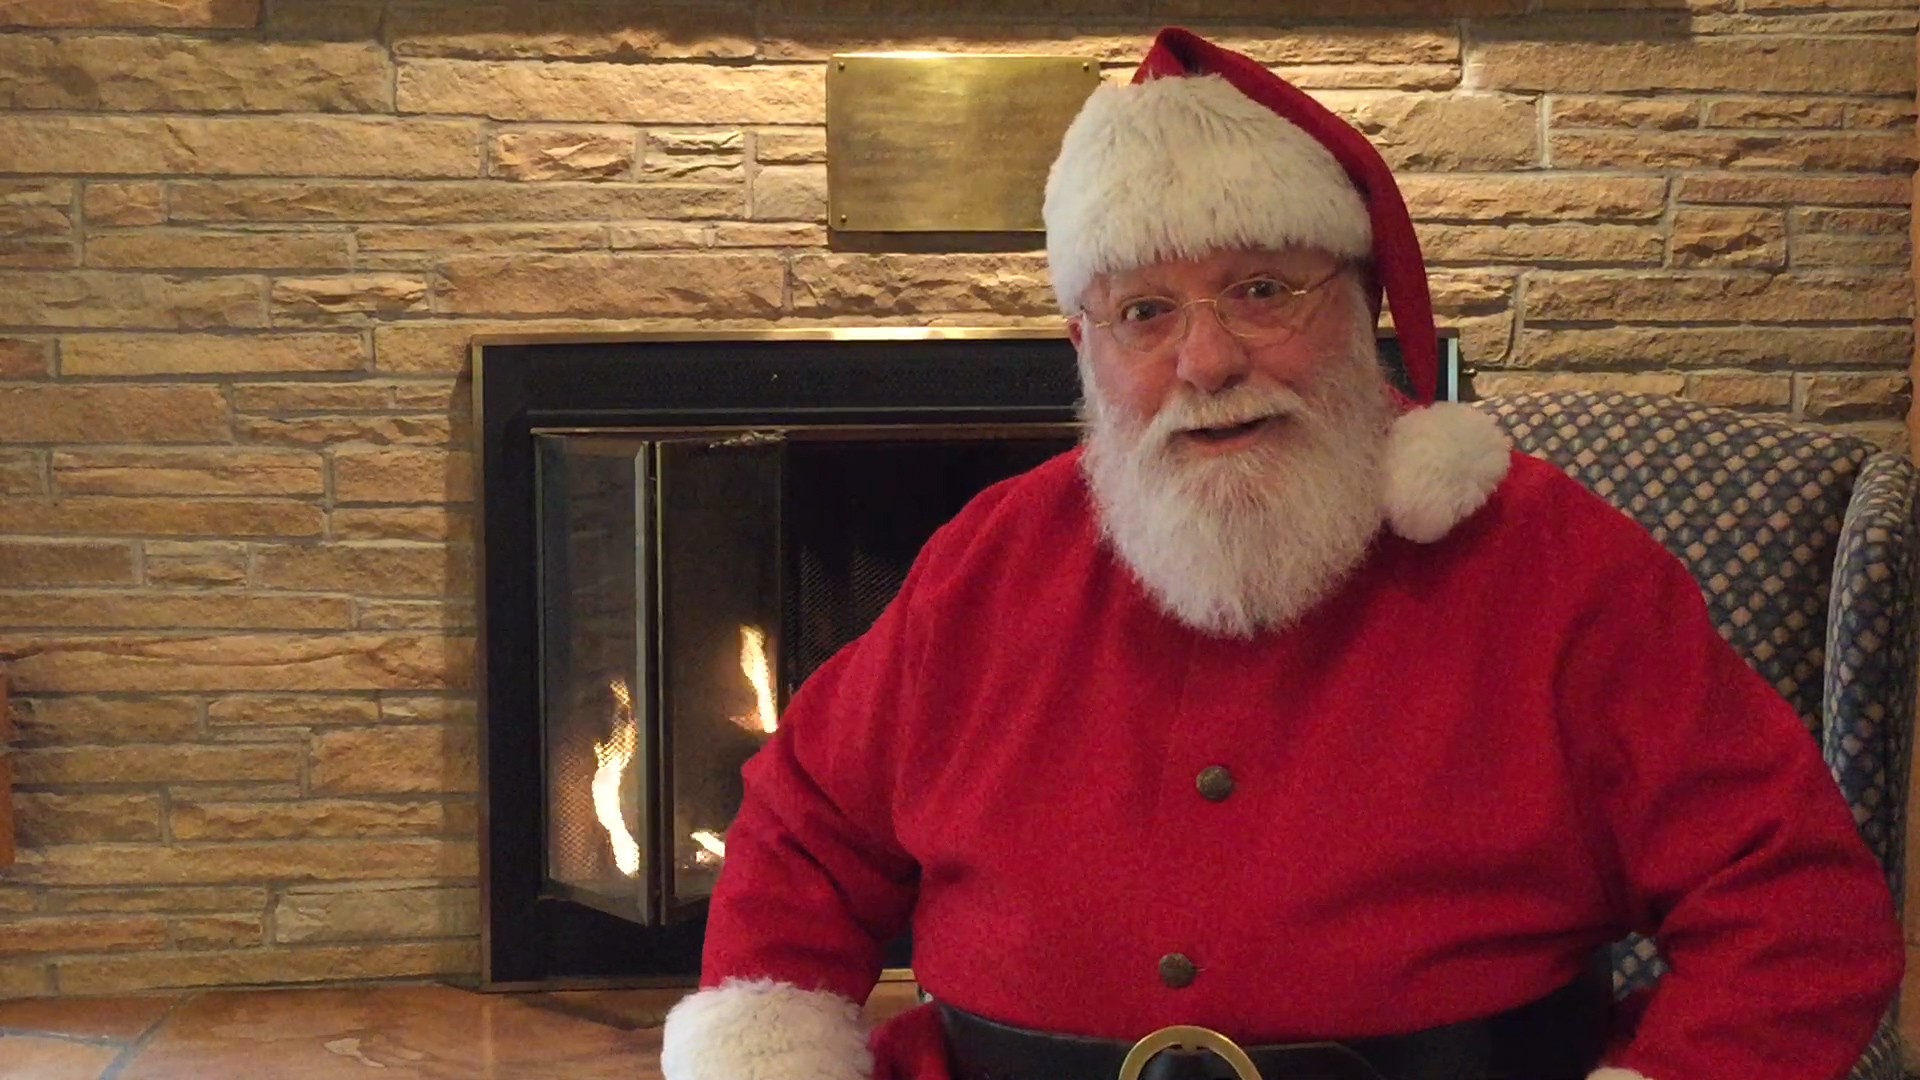 Santa relaxes in front of his fireplace